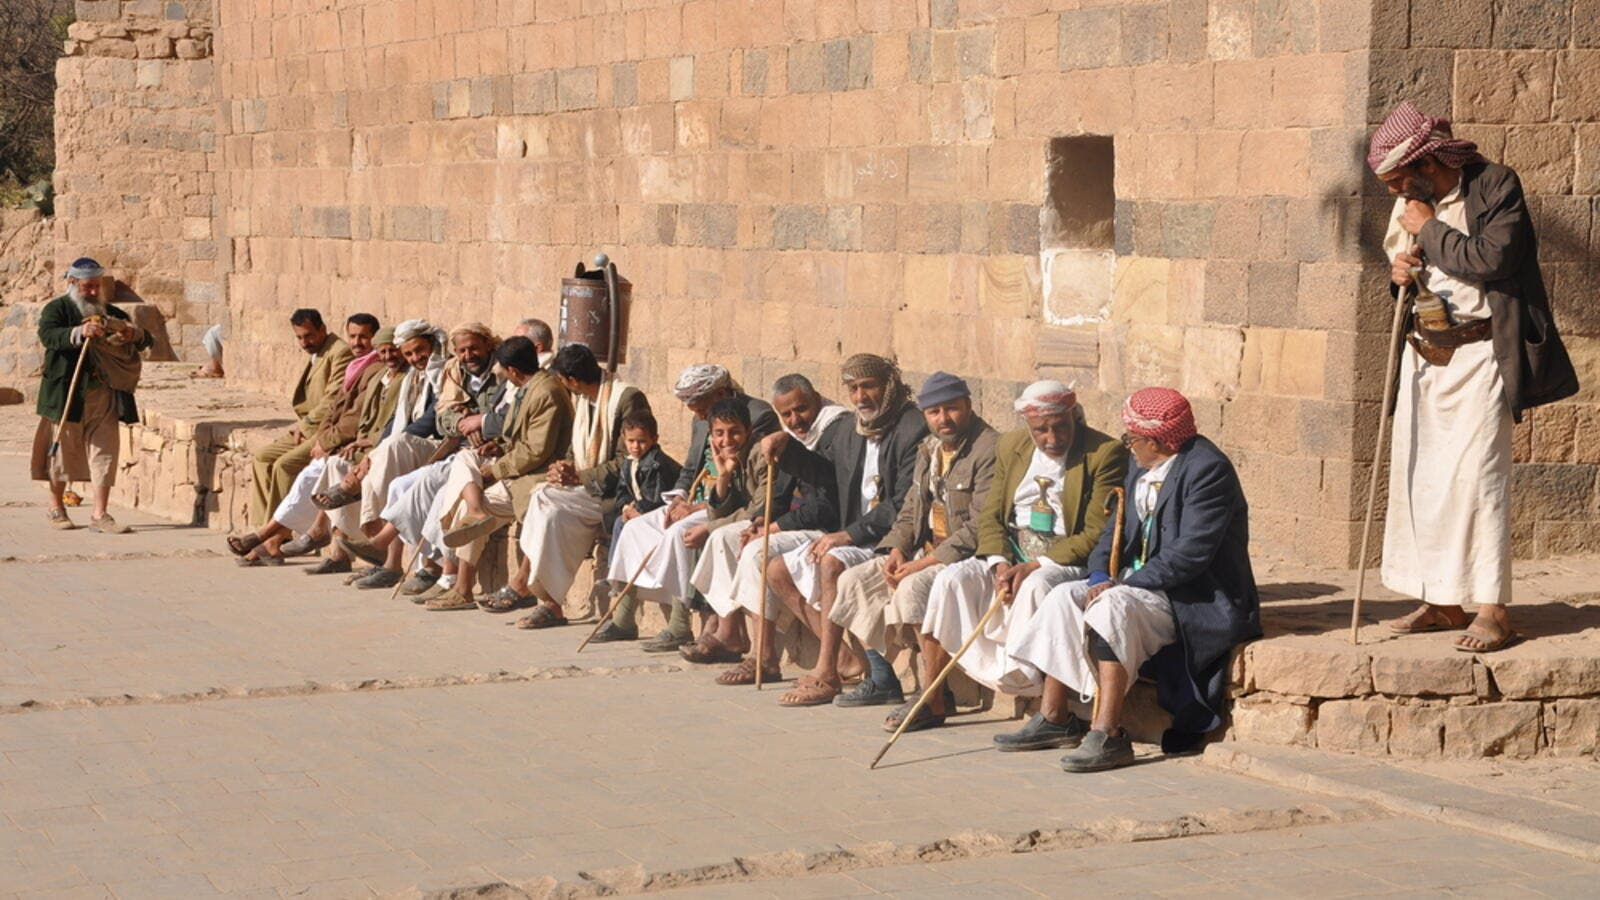 Men sit on the main square of Thula, Yemen (Shutterstock/File Photo)